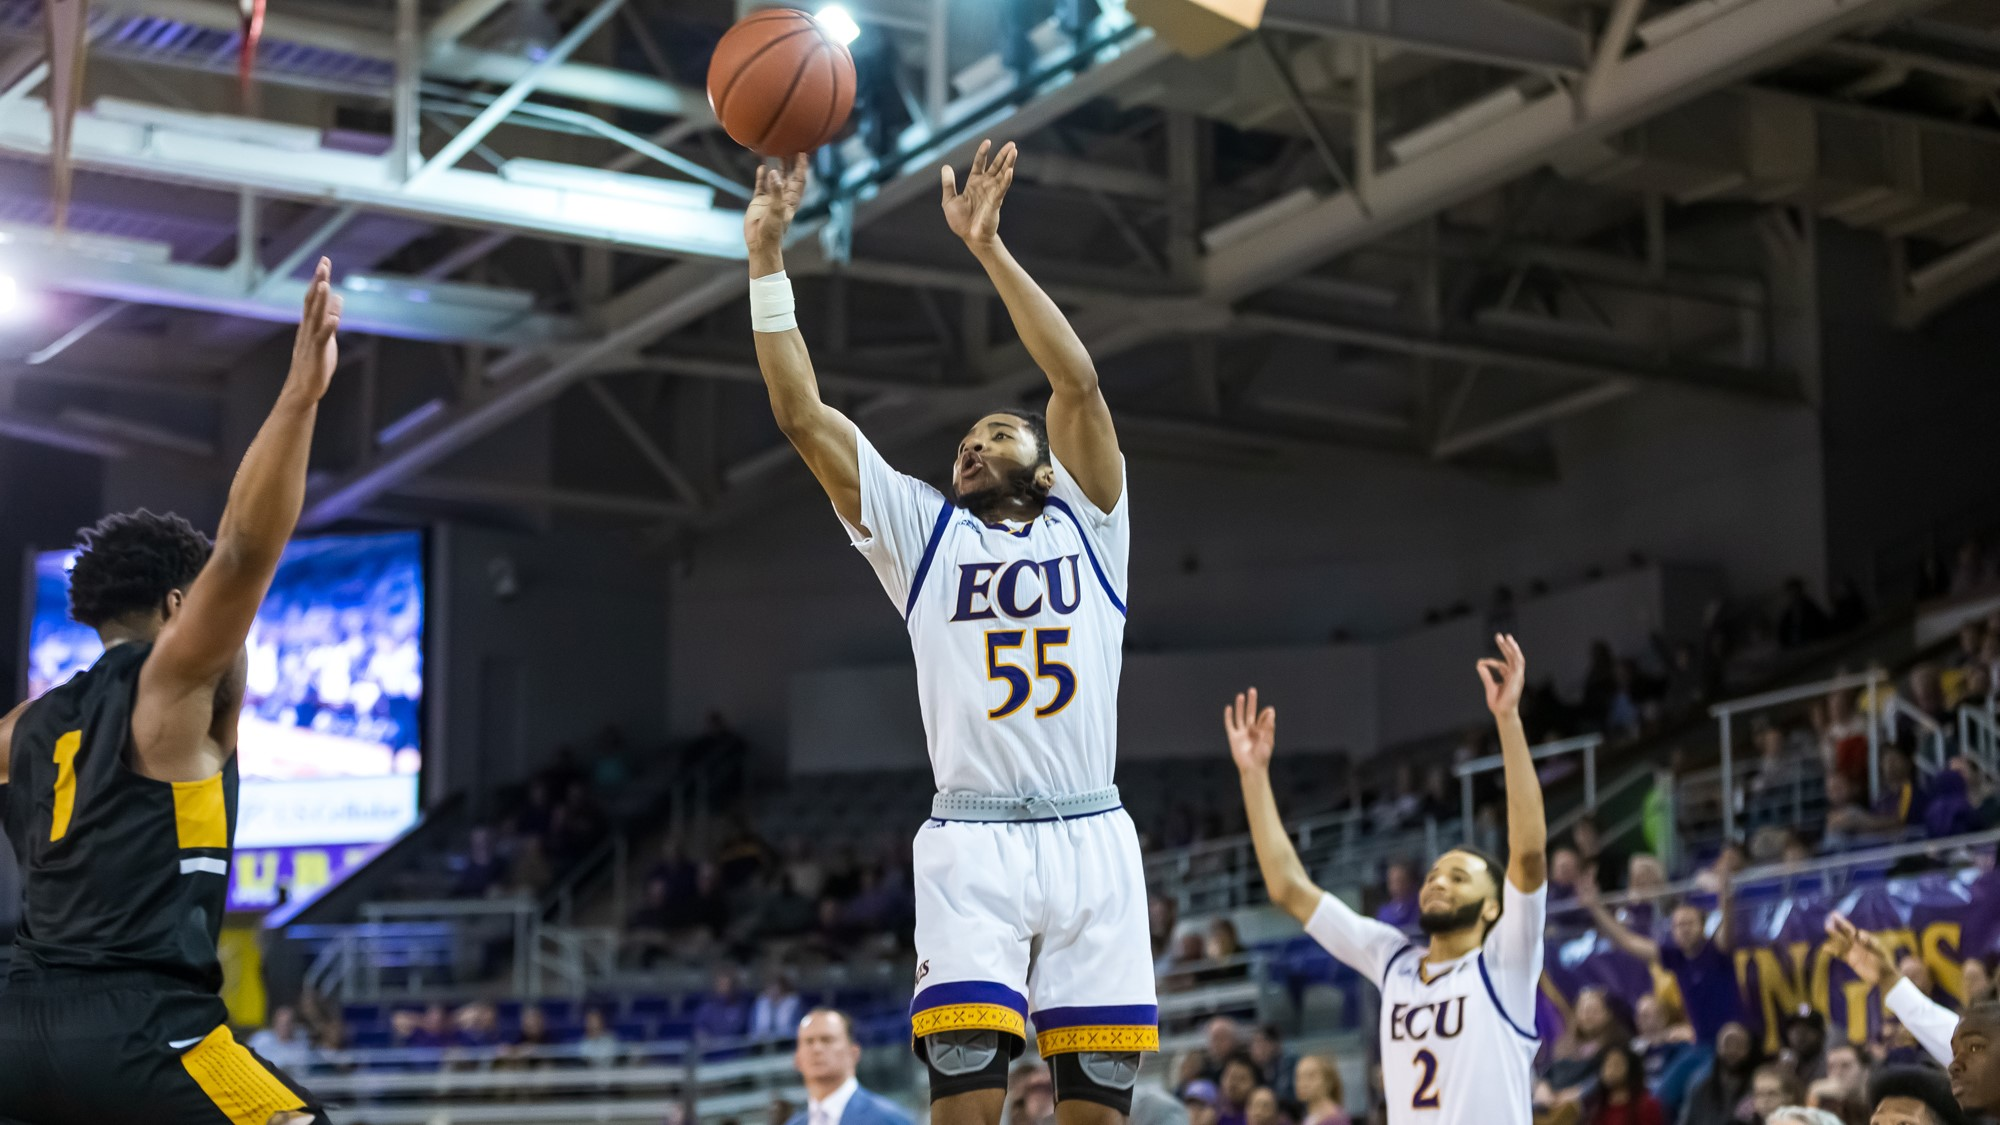 gameday: ecu host umes to close out fall semester - east carolina